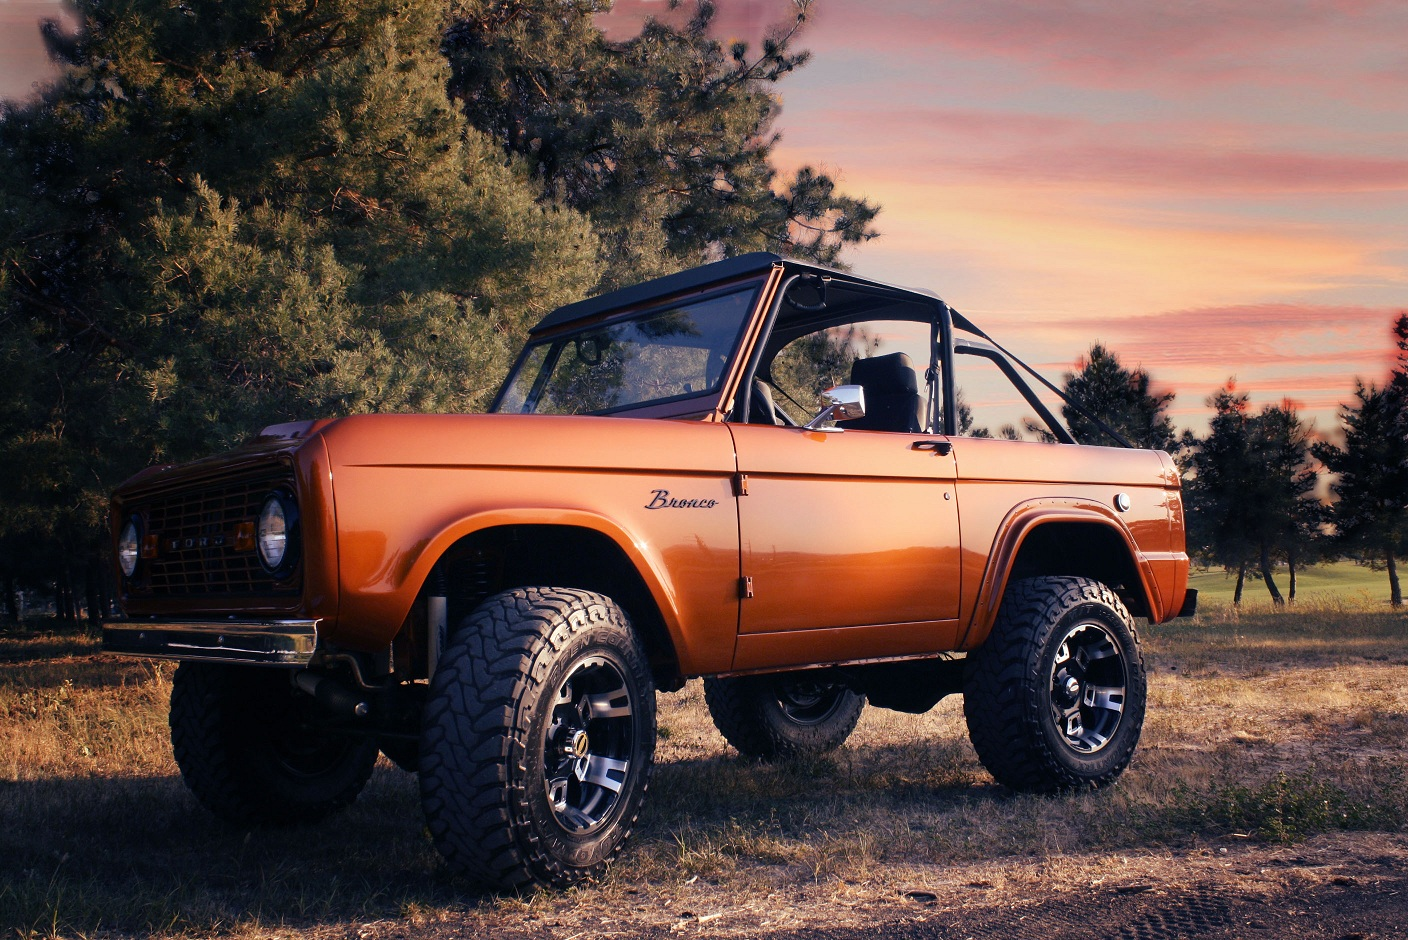 Classic Ford Bronco For Sale >> Tom's Bronco Parts Photo Gallery of 66-77 Ford Broncos